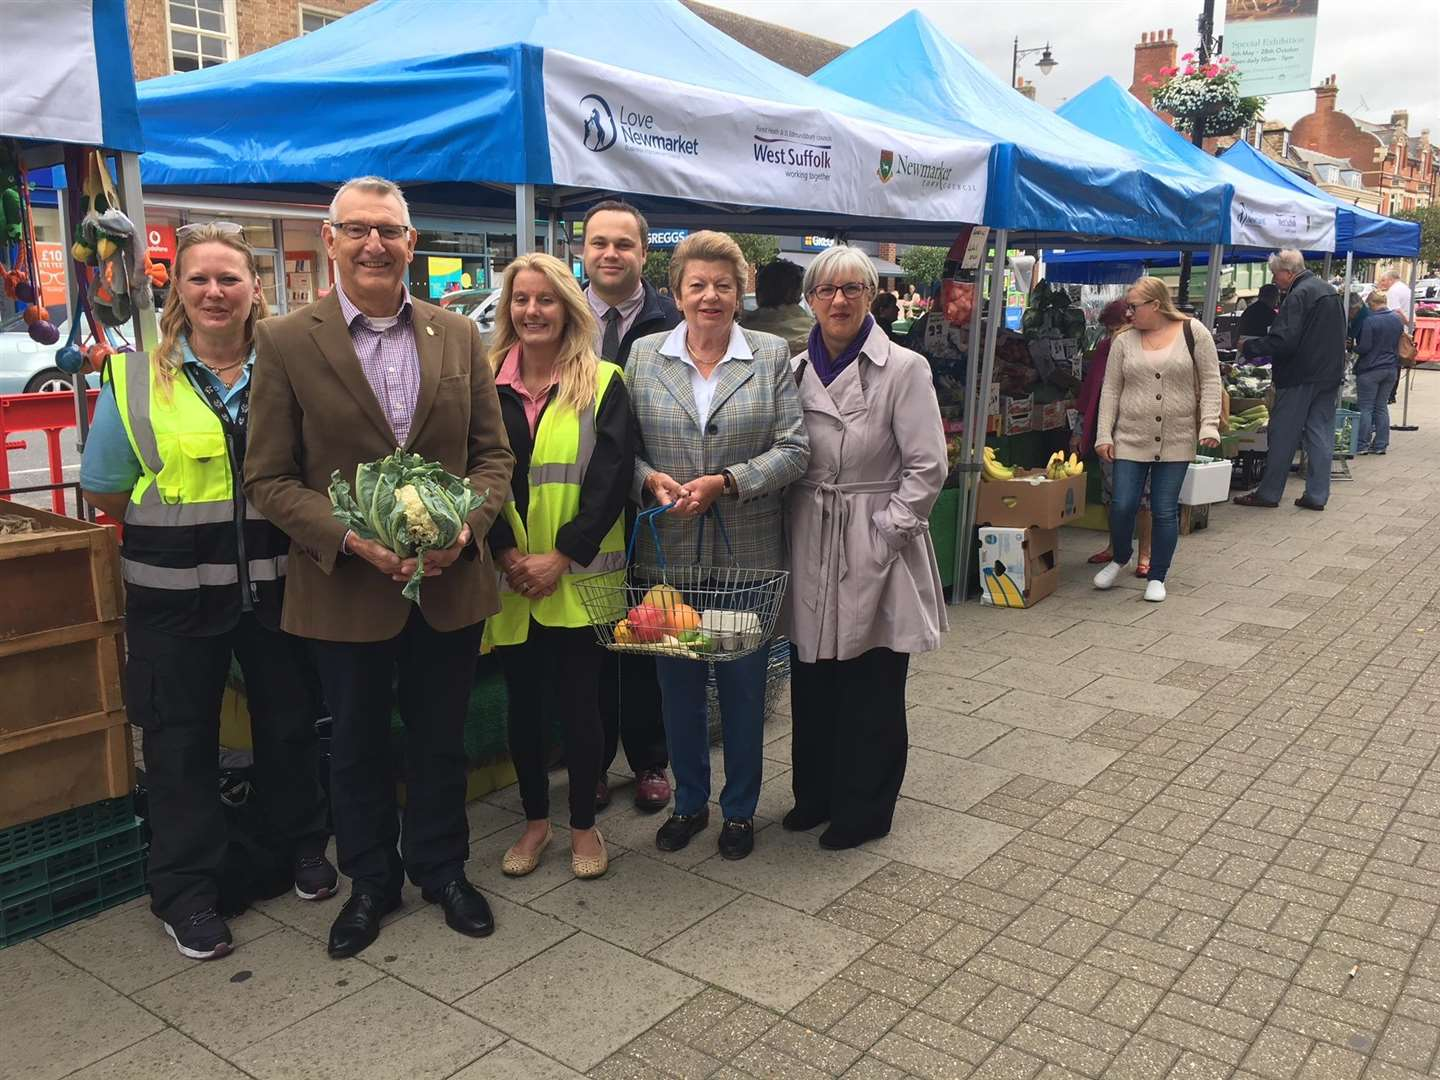 At the fist day of the High Street market: Gabby Furze, Markets Officer; Cllr David Bowman, Cabinet member for Operations at Forest Heath District Council; Sharon Fairweather, Market Development Manager; Graham Philpot of Love Newmarket; Cllr Philippa Winter, Newmarket Town Council and Lesley Ferguson